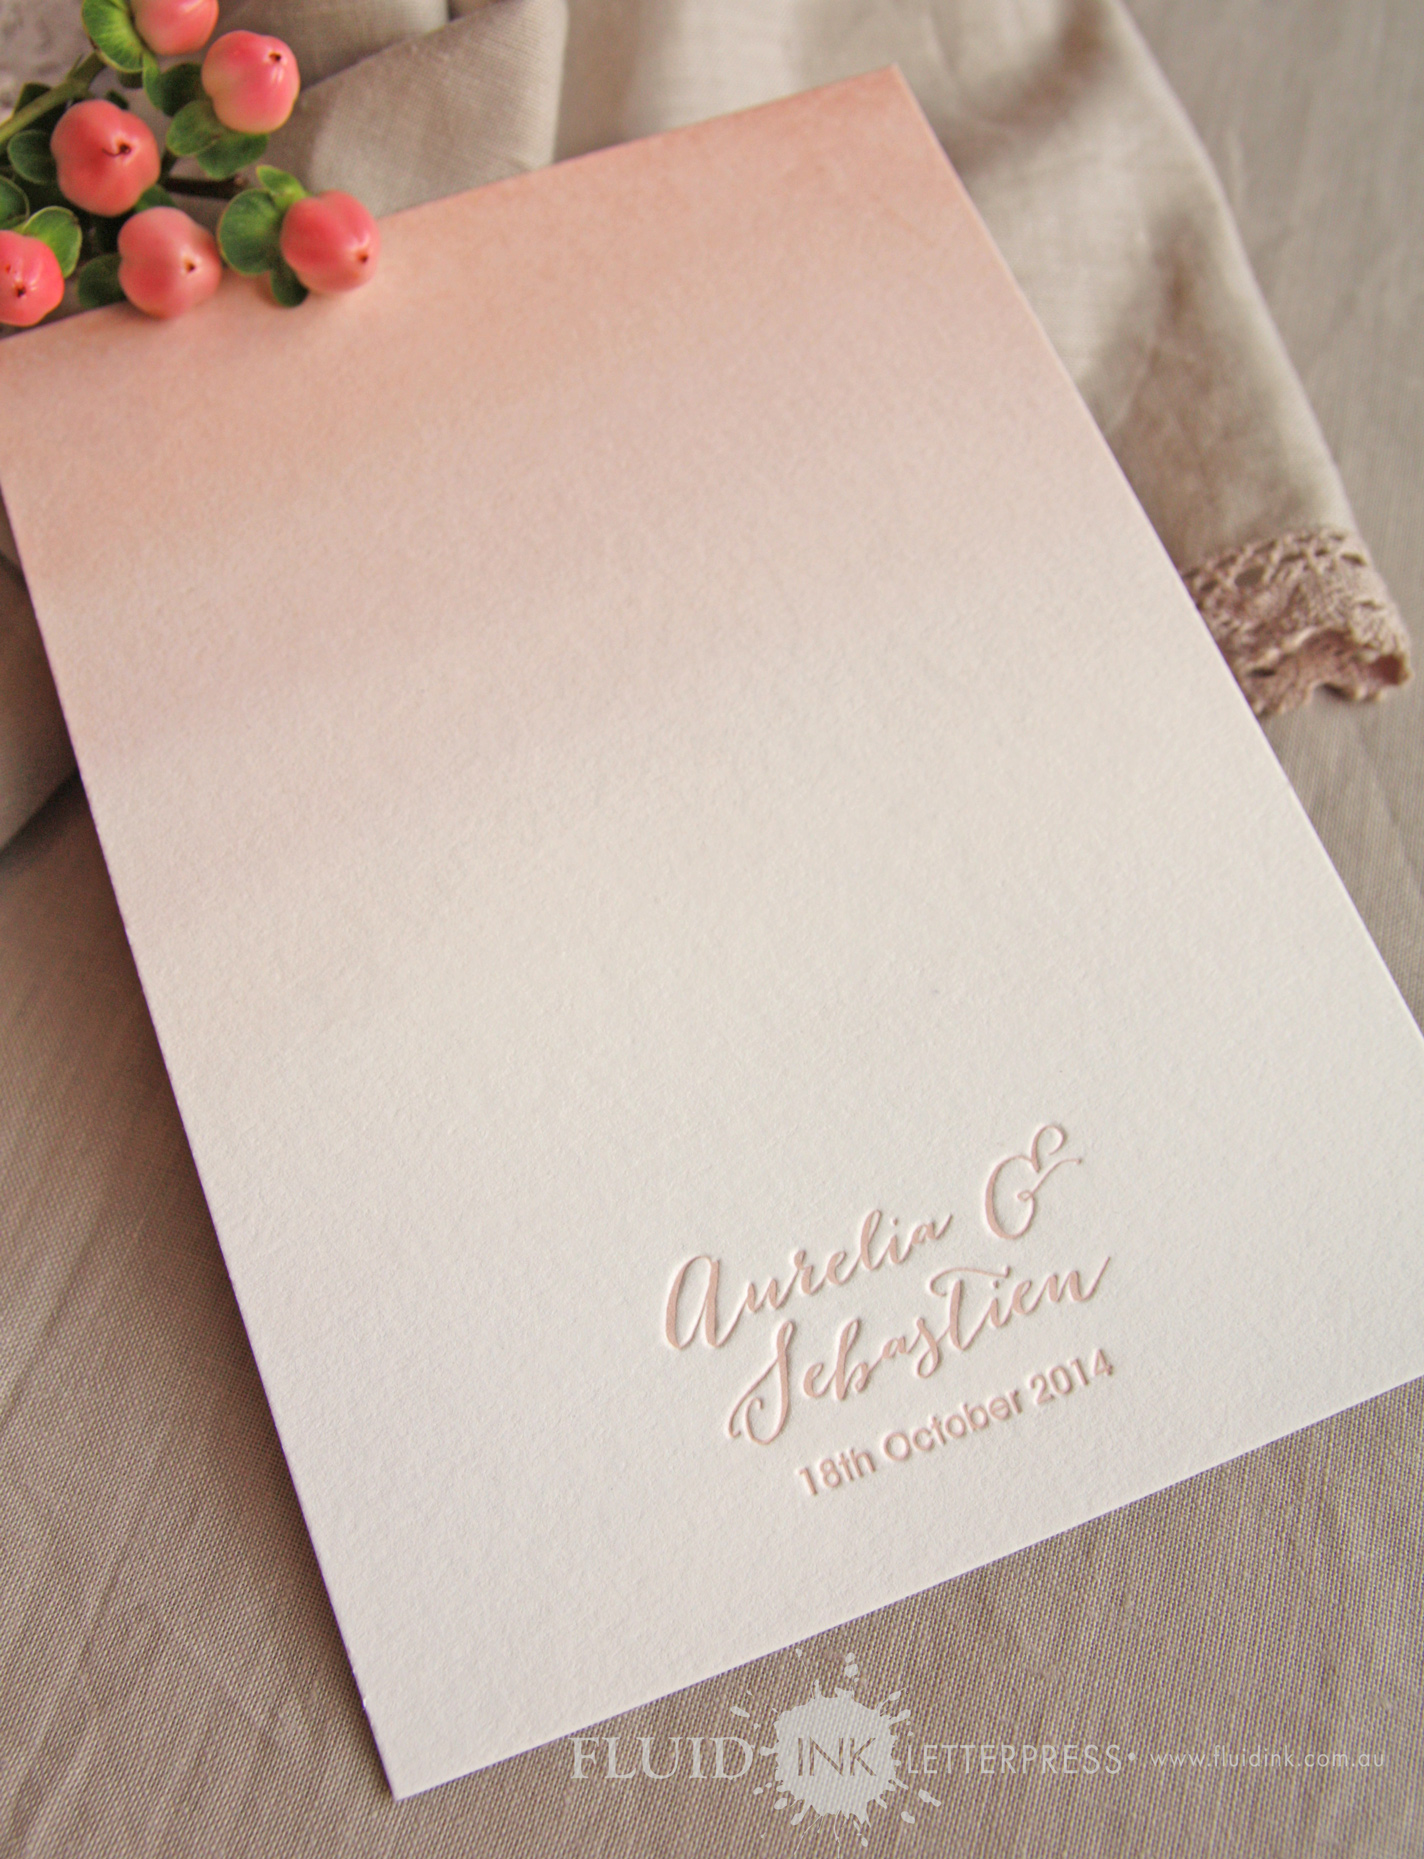 Beach letterpress invitations.jpg